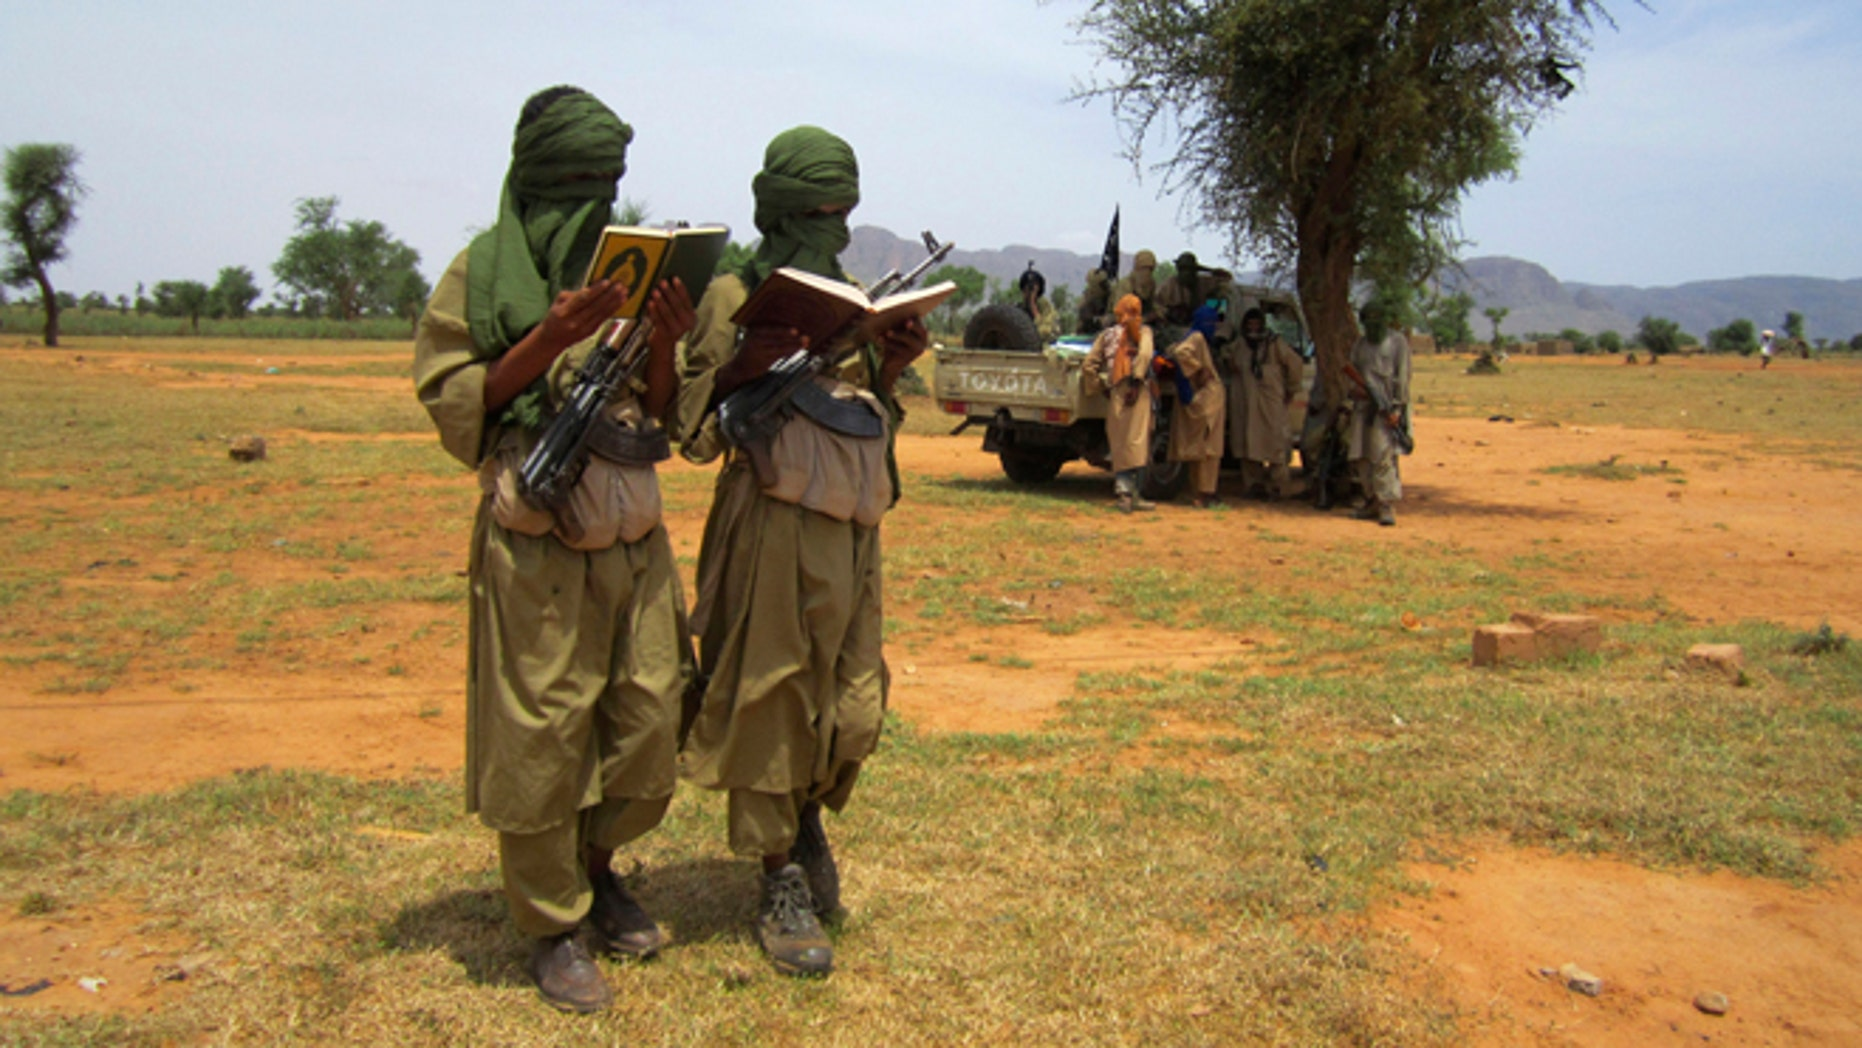 Sept. 27, 2012: Two young fighters read out Quranic verses for a journalist, at the request of their Islamist commanders, in Douentza, Mali.